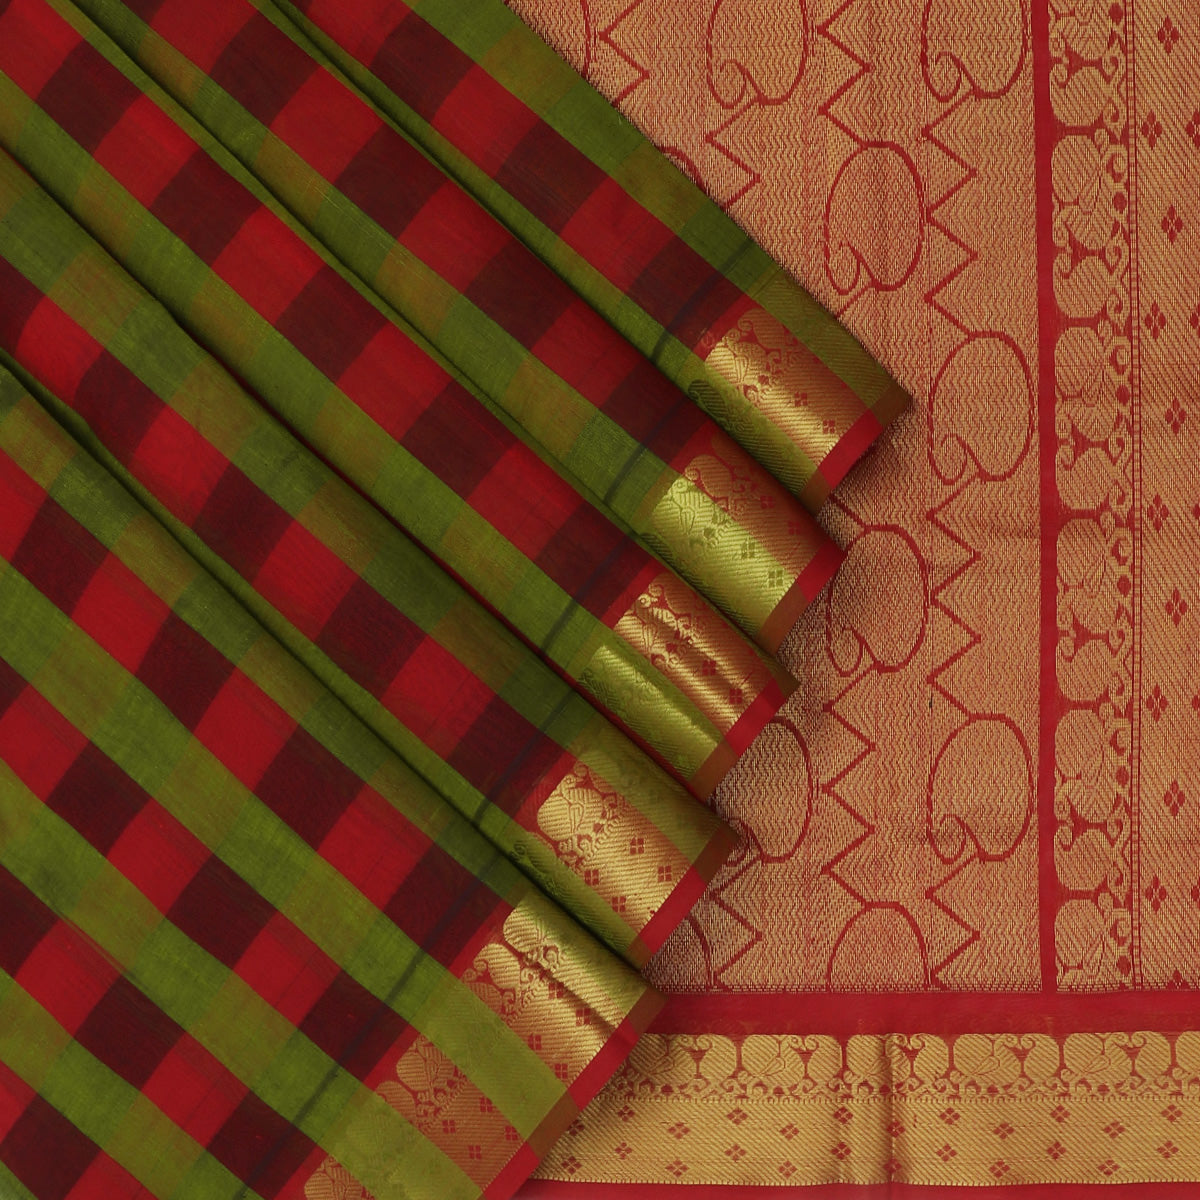 Silk Cotton Saree-Checked Red and Green with Mango zari border